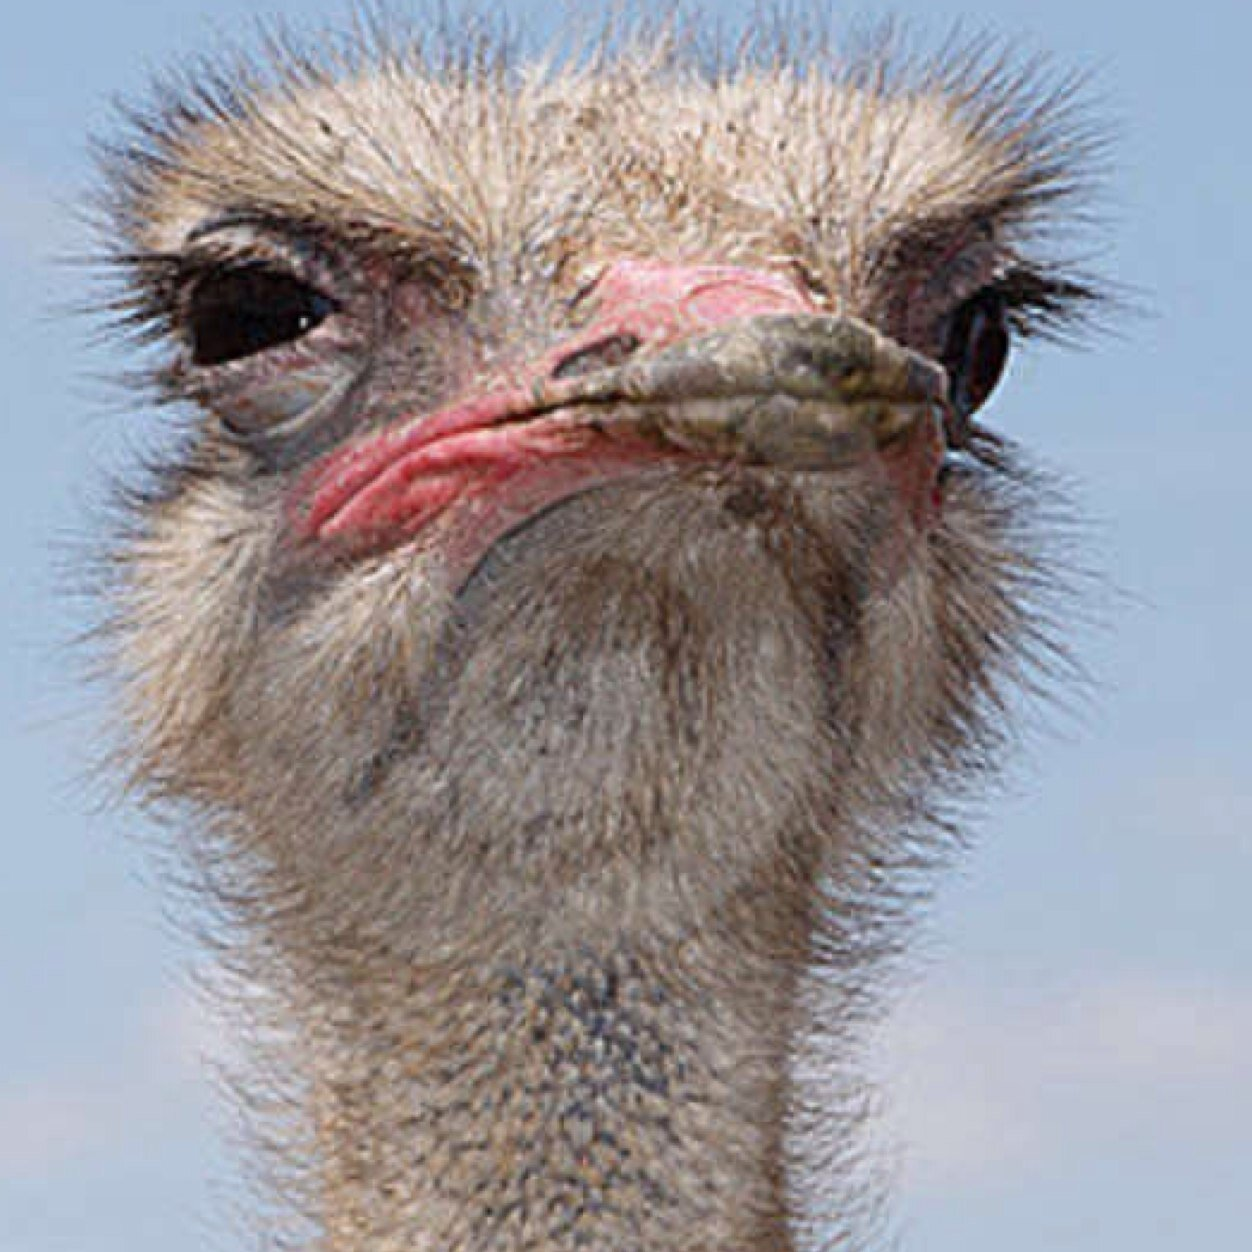 PicturesOfOstrich on Preschool Coloring Pages